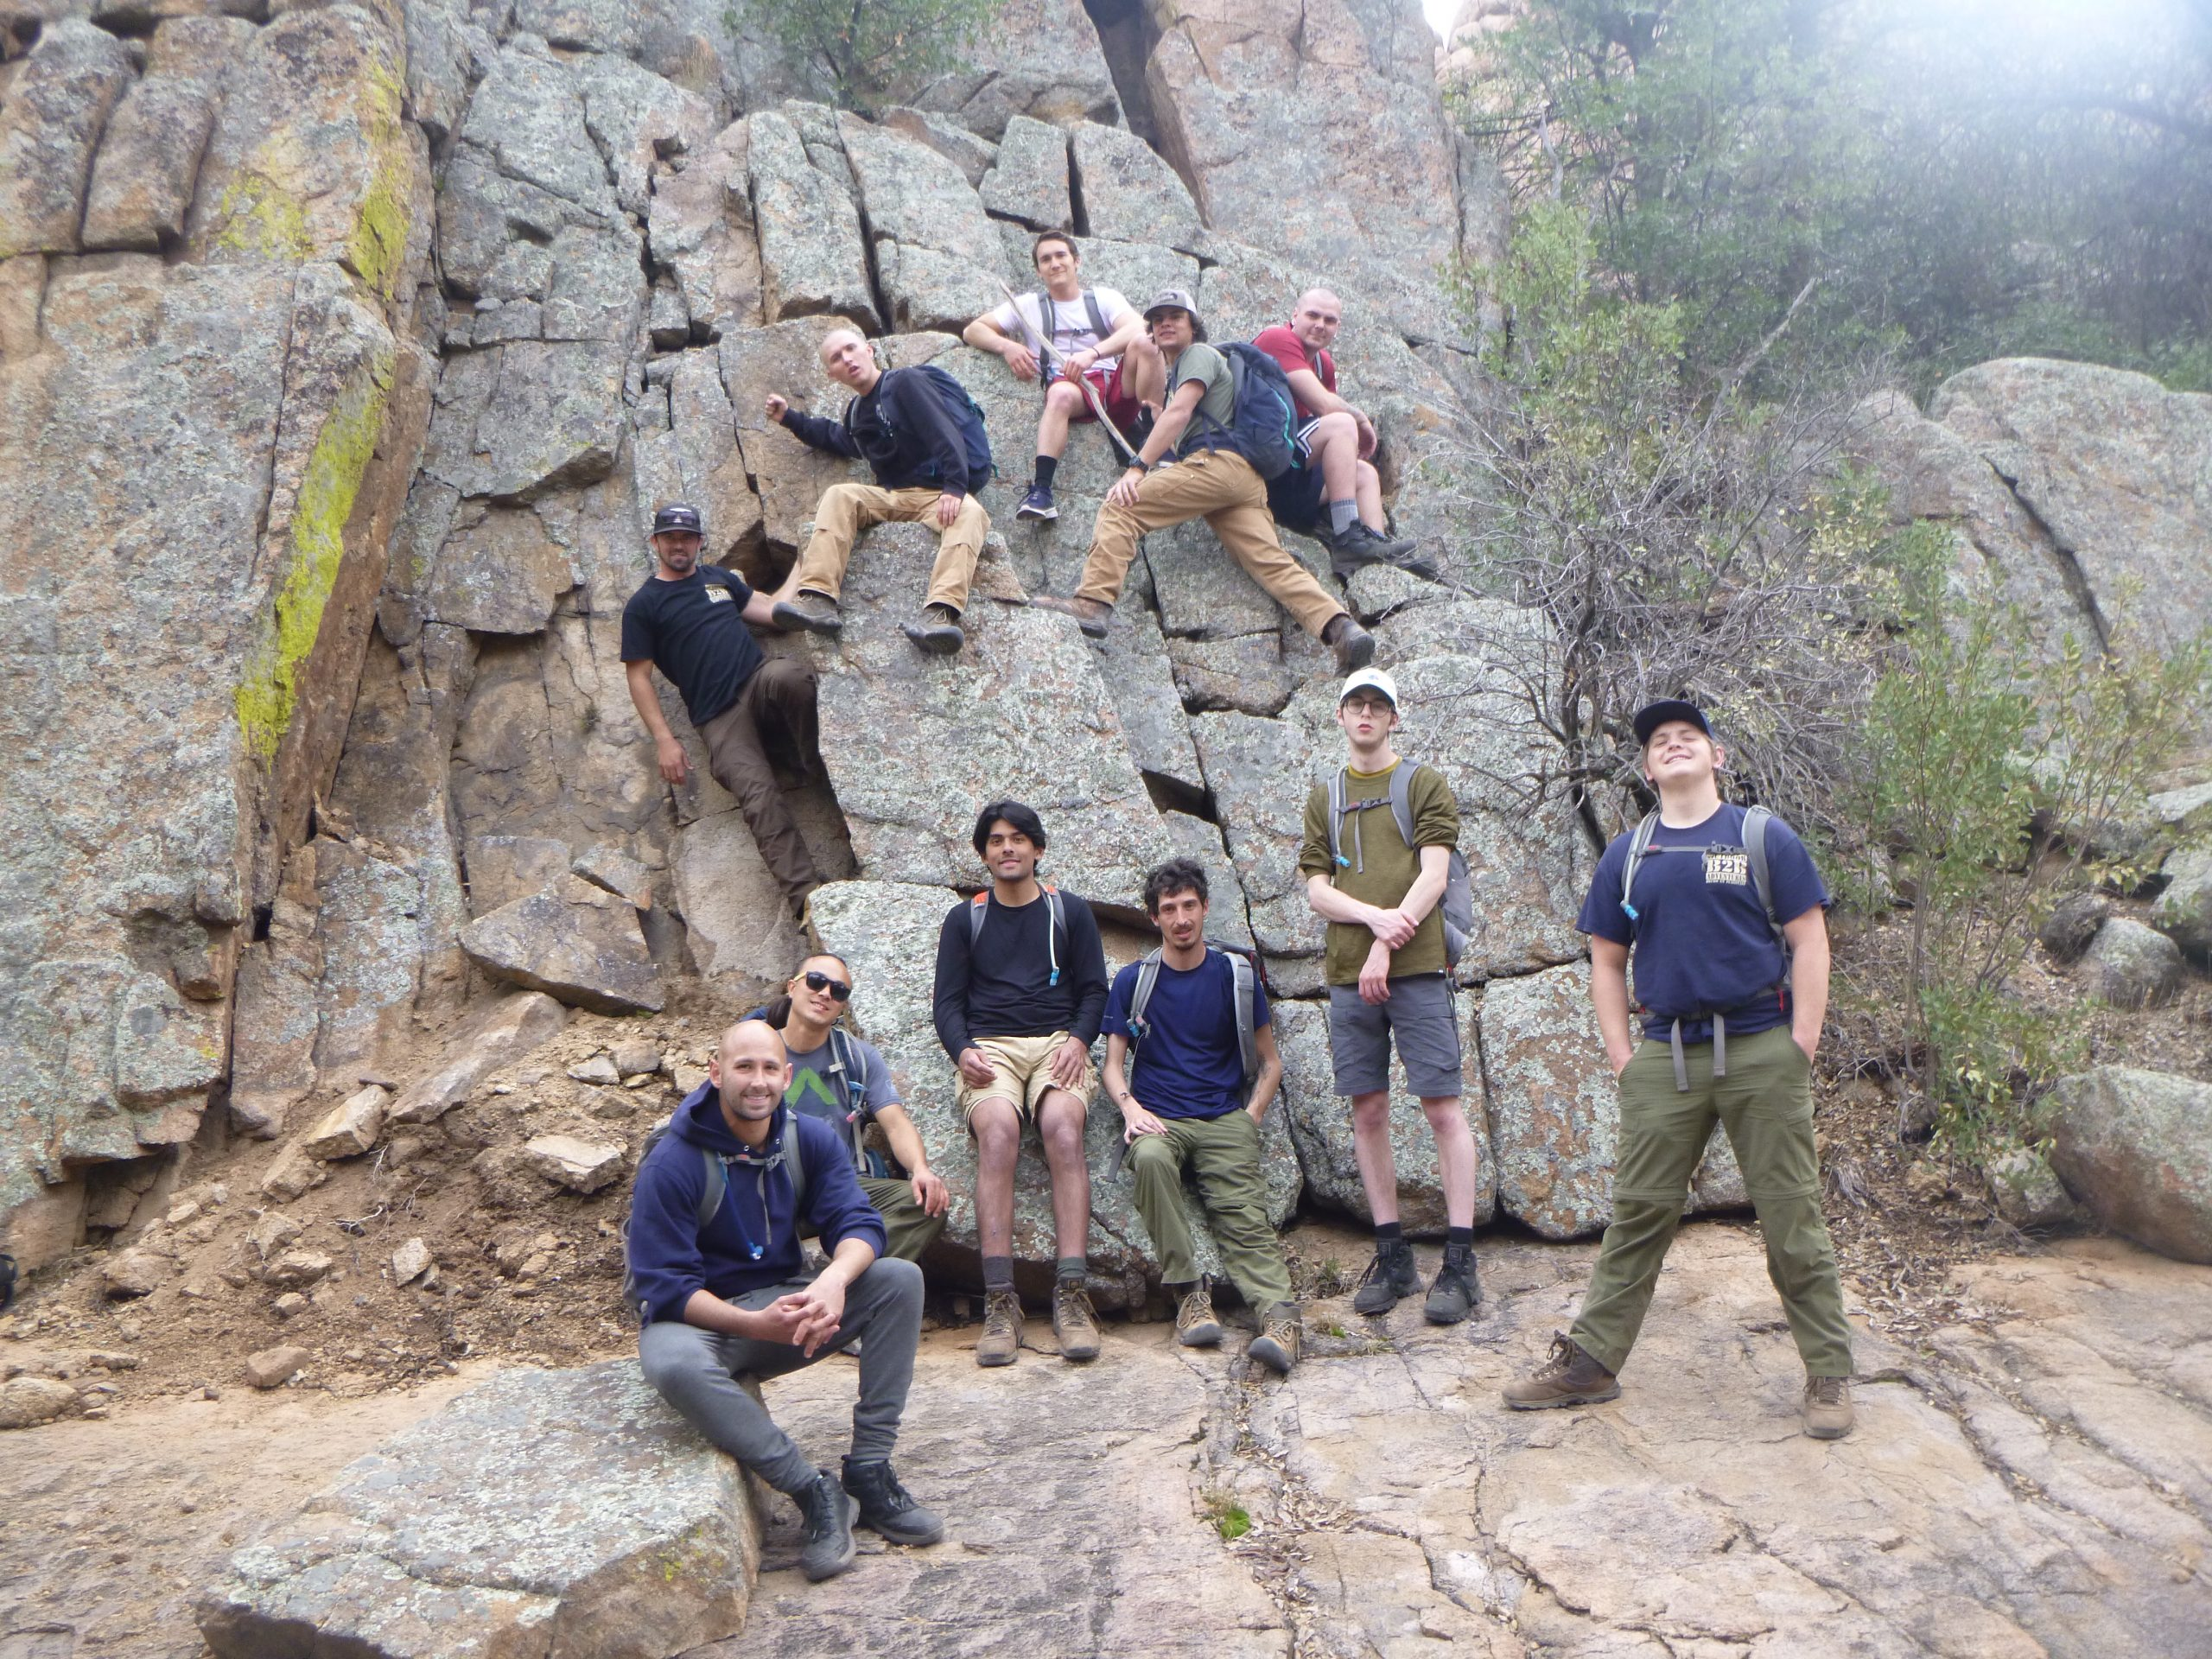 Outdoor Treatments For Addiction Young Men on Rocks